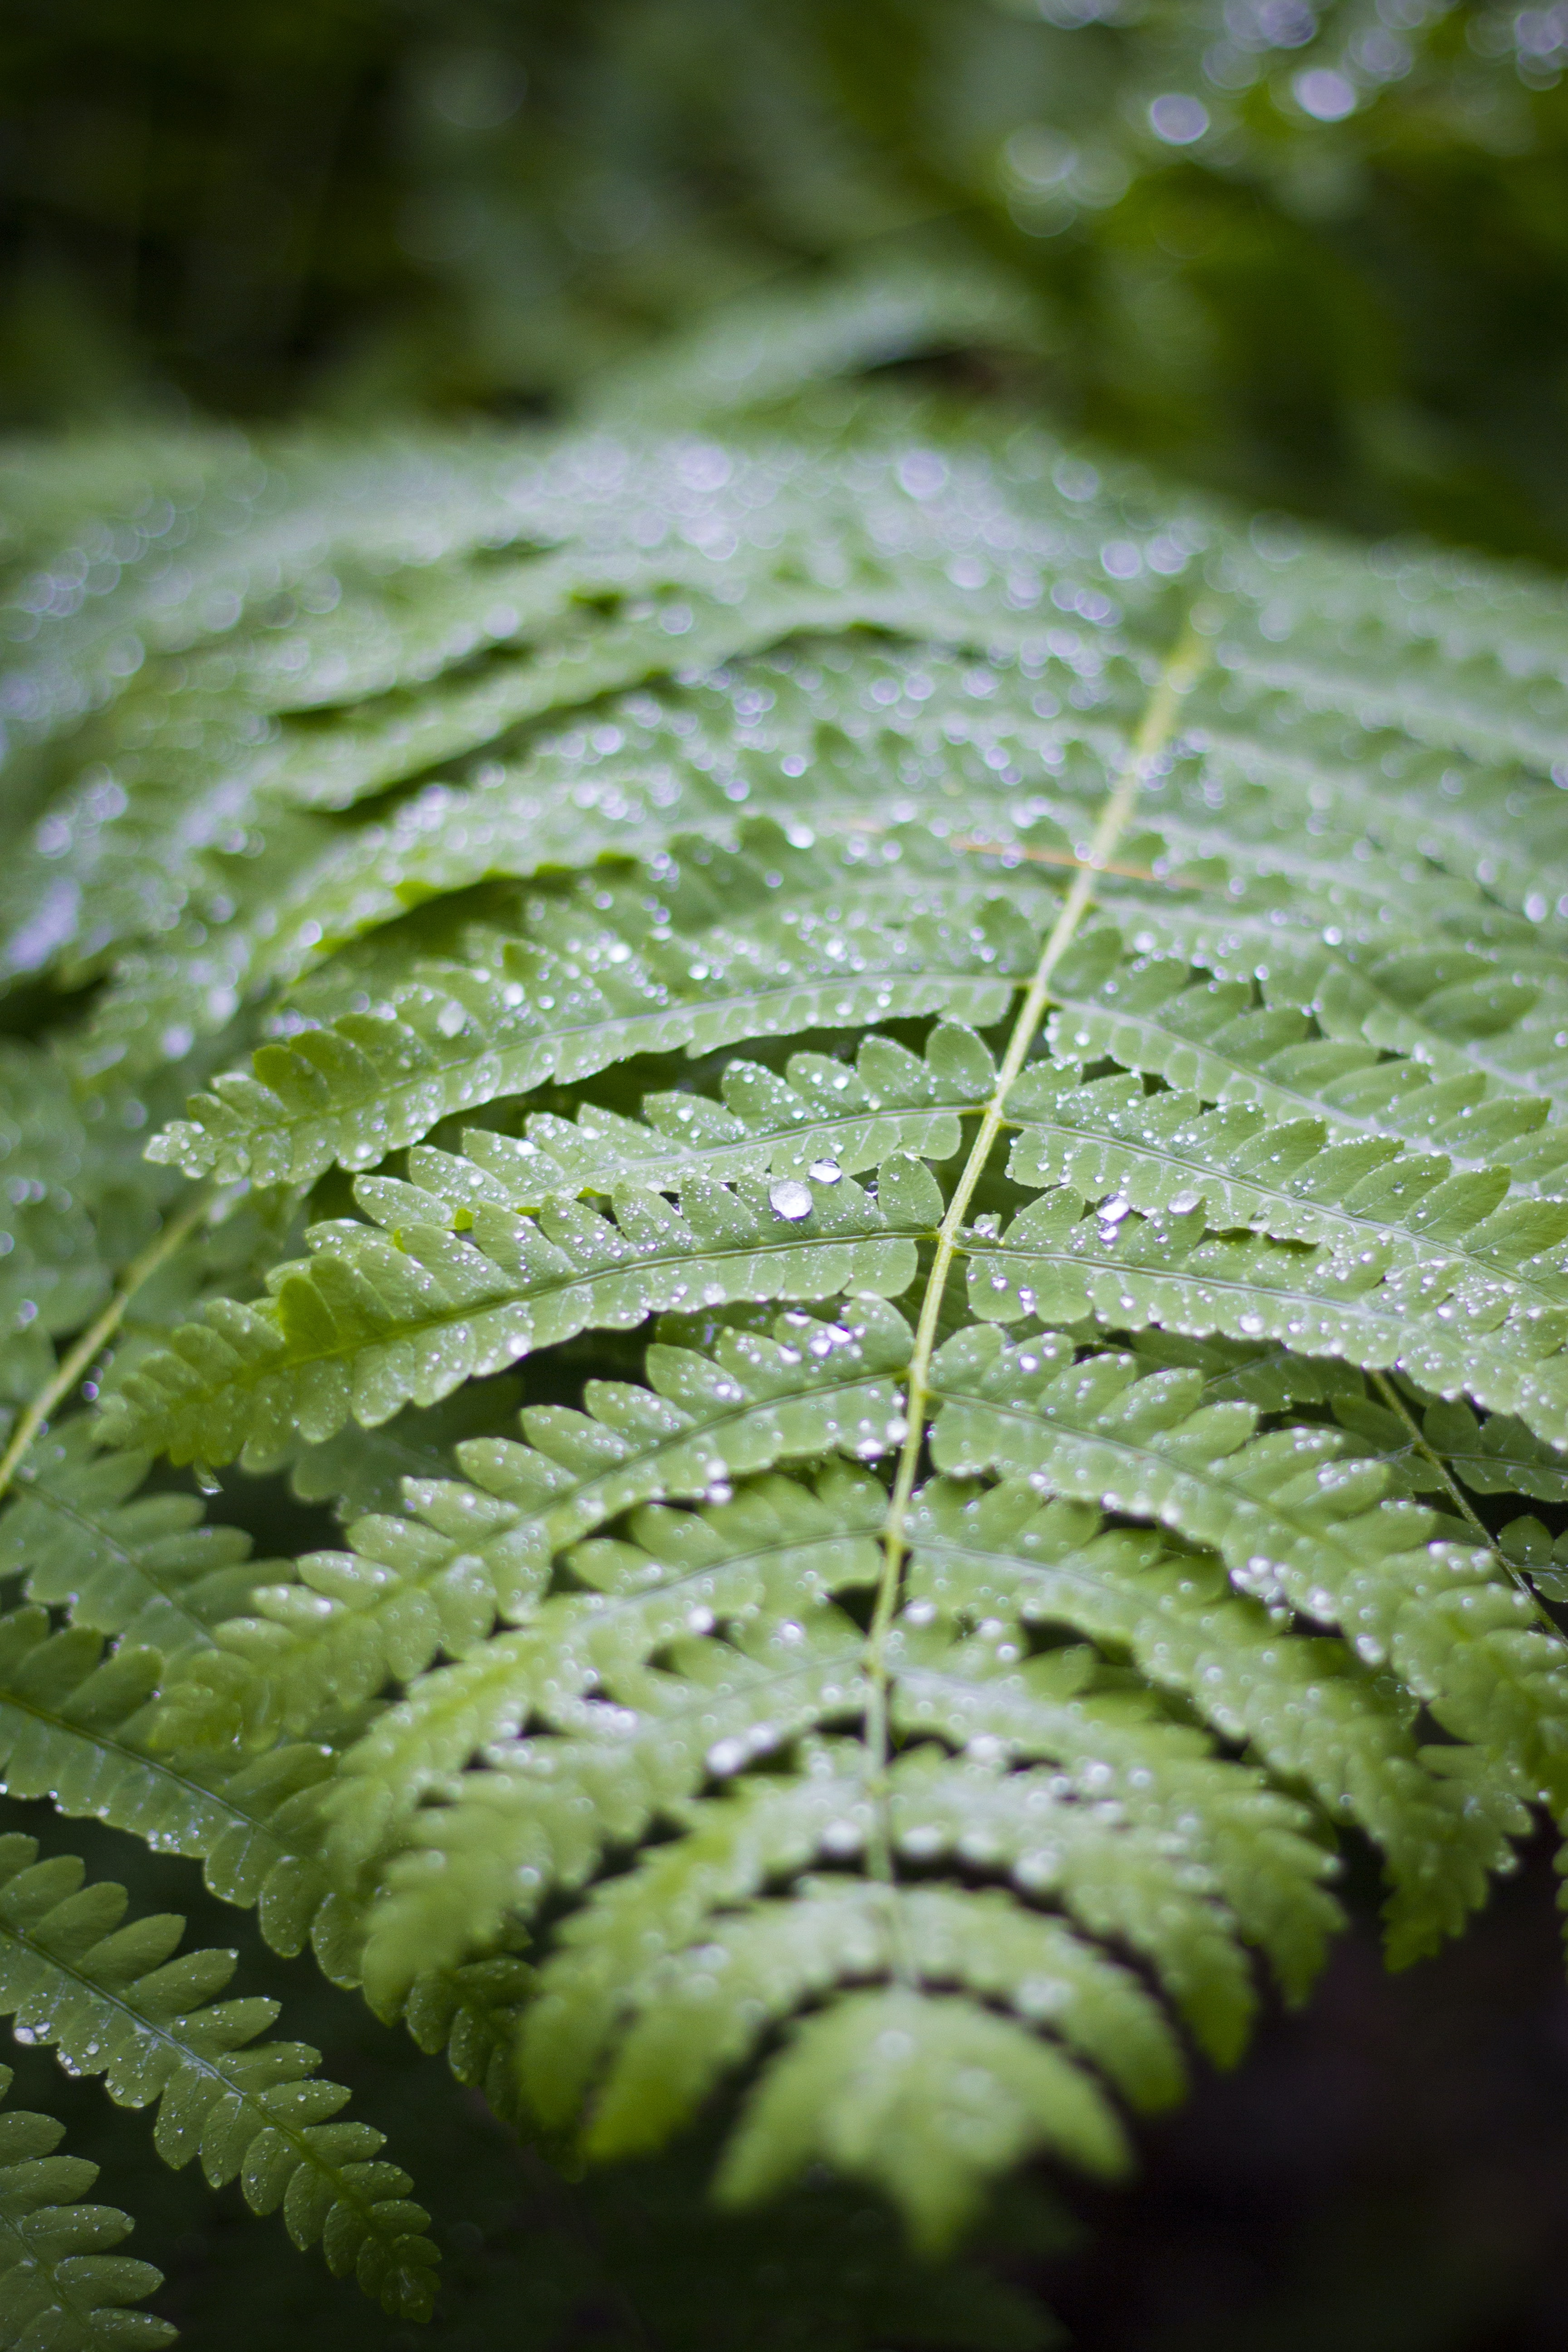 green leaf in closeup photography